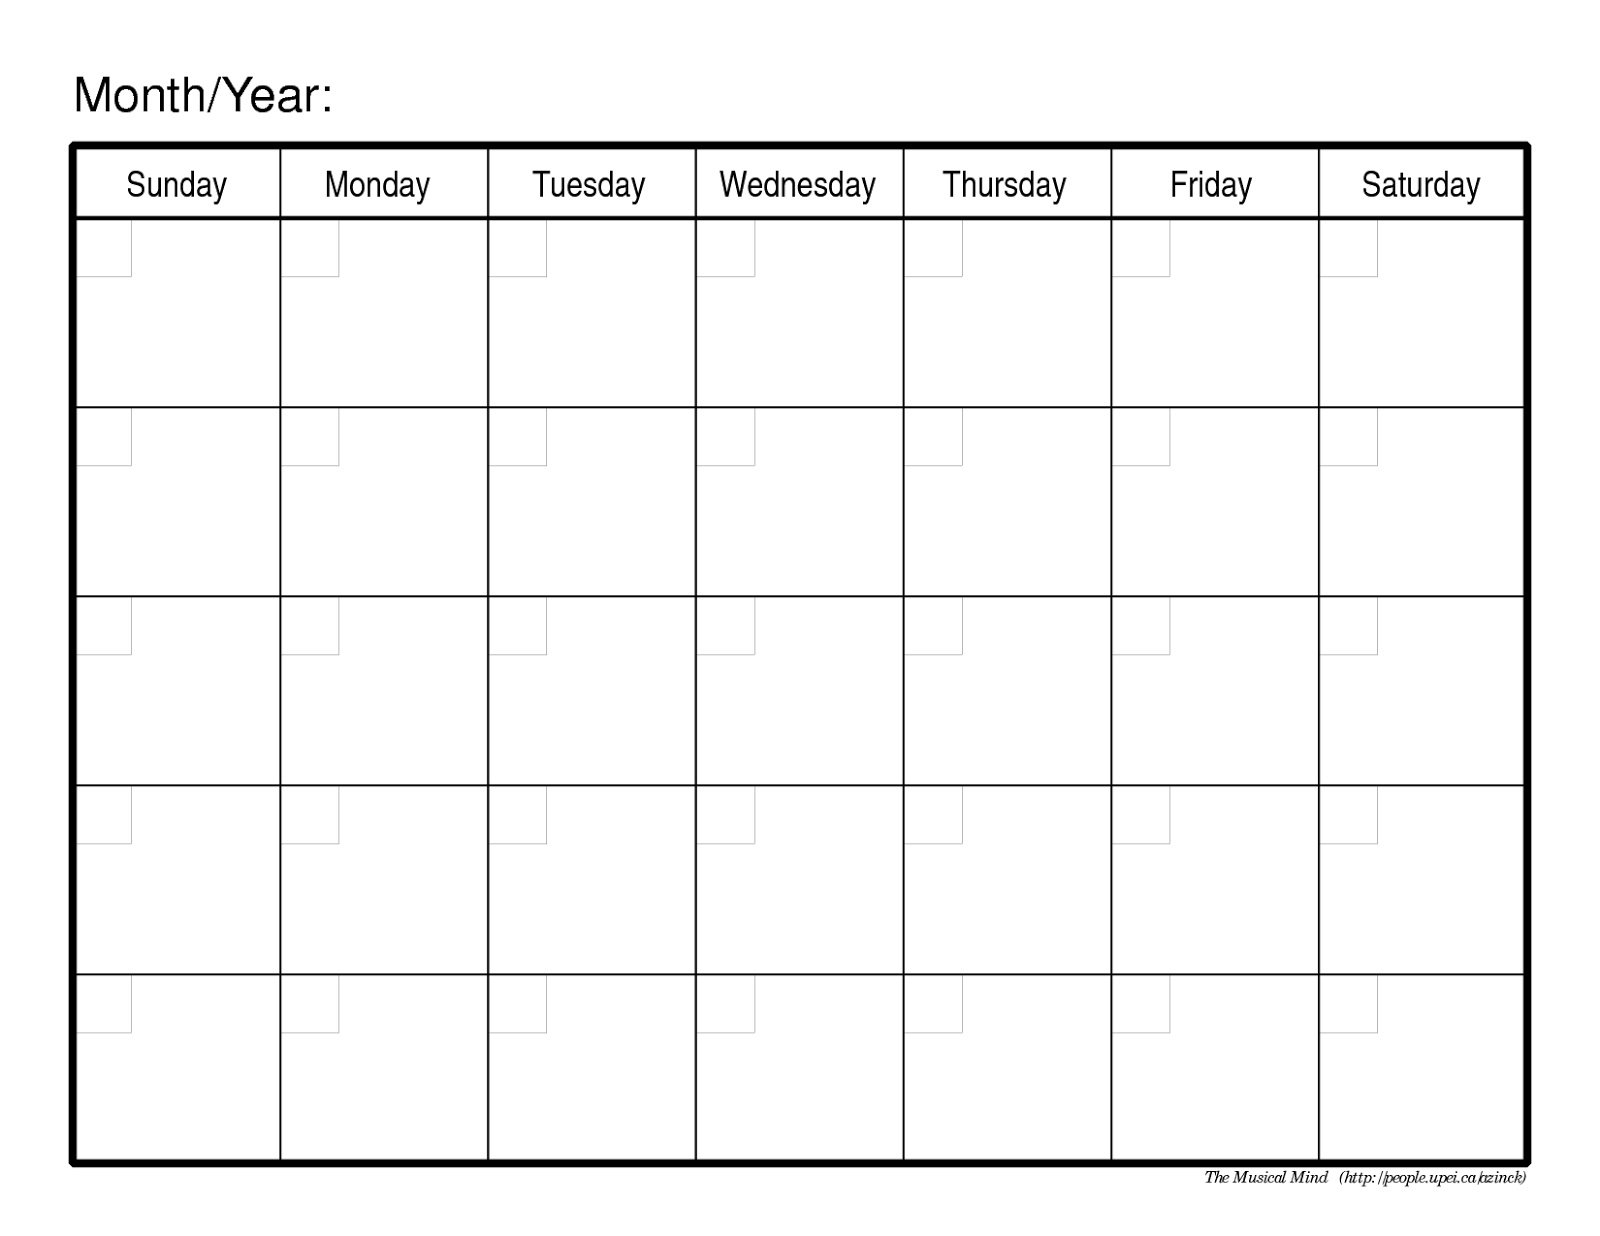 Monthly Calendar No Dates | Month Printable Calendar  Printable Calendar Month By Month